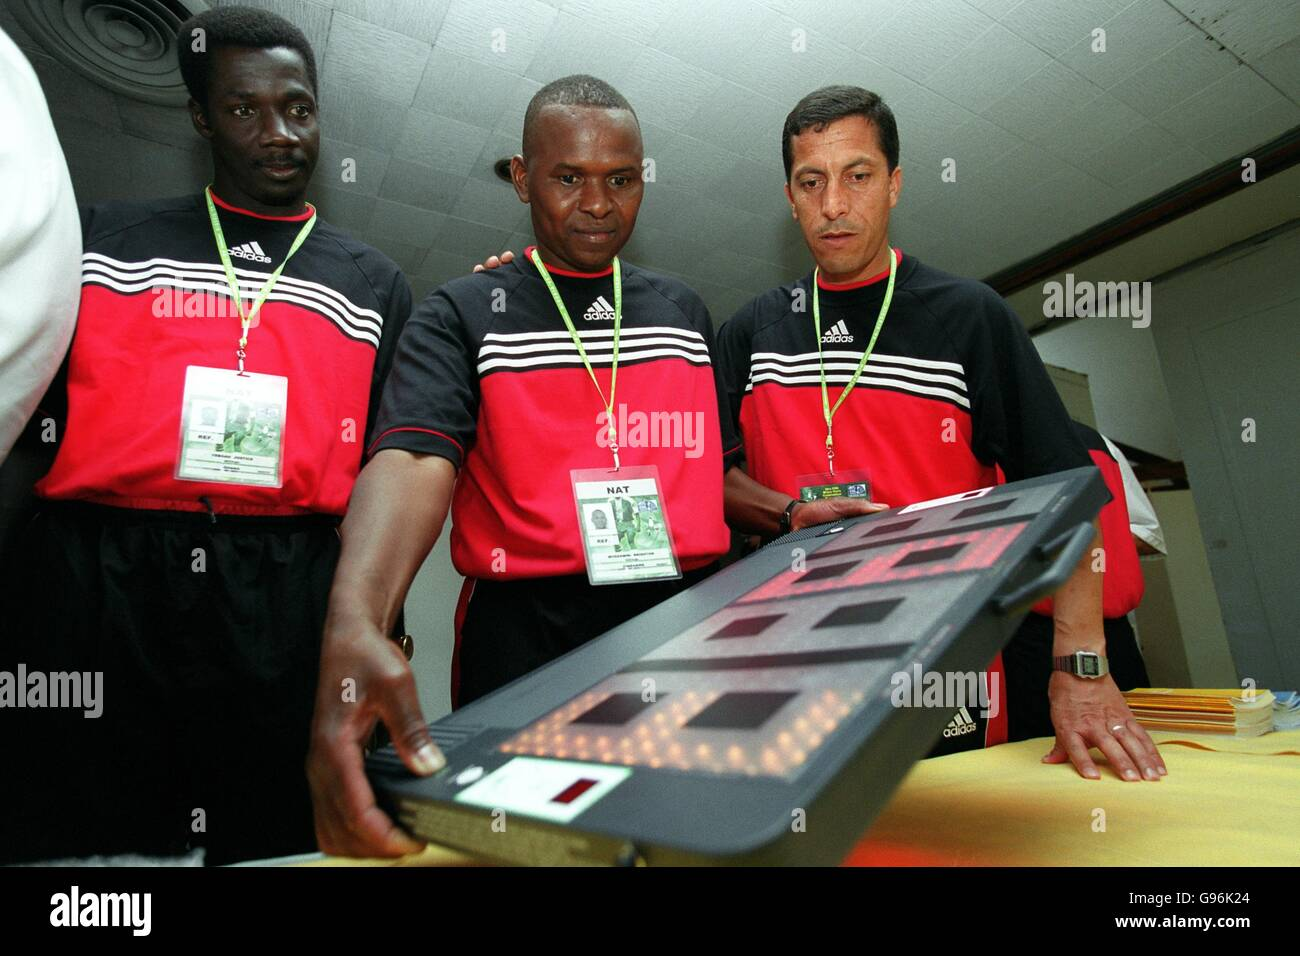 Soccer - FIFA World Youth Championships - Referees Testing - Stock Image